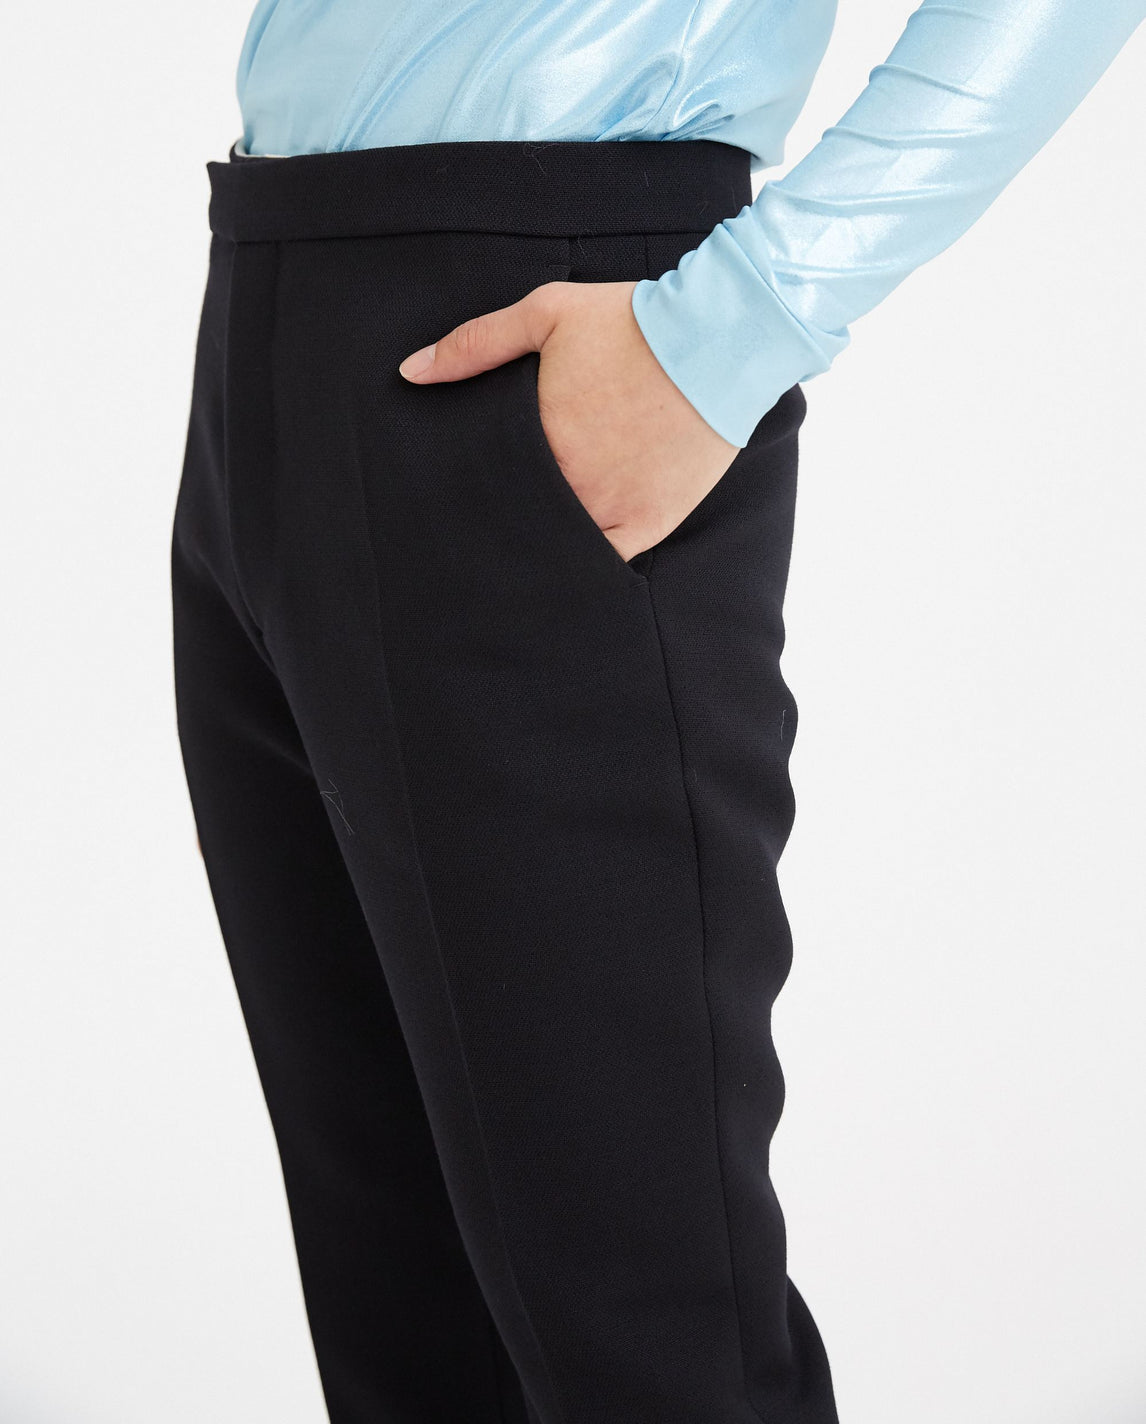 Slim Fit Pants - Dark Navy MENS RAF SIMONS